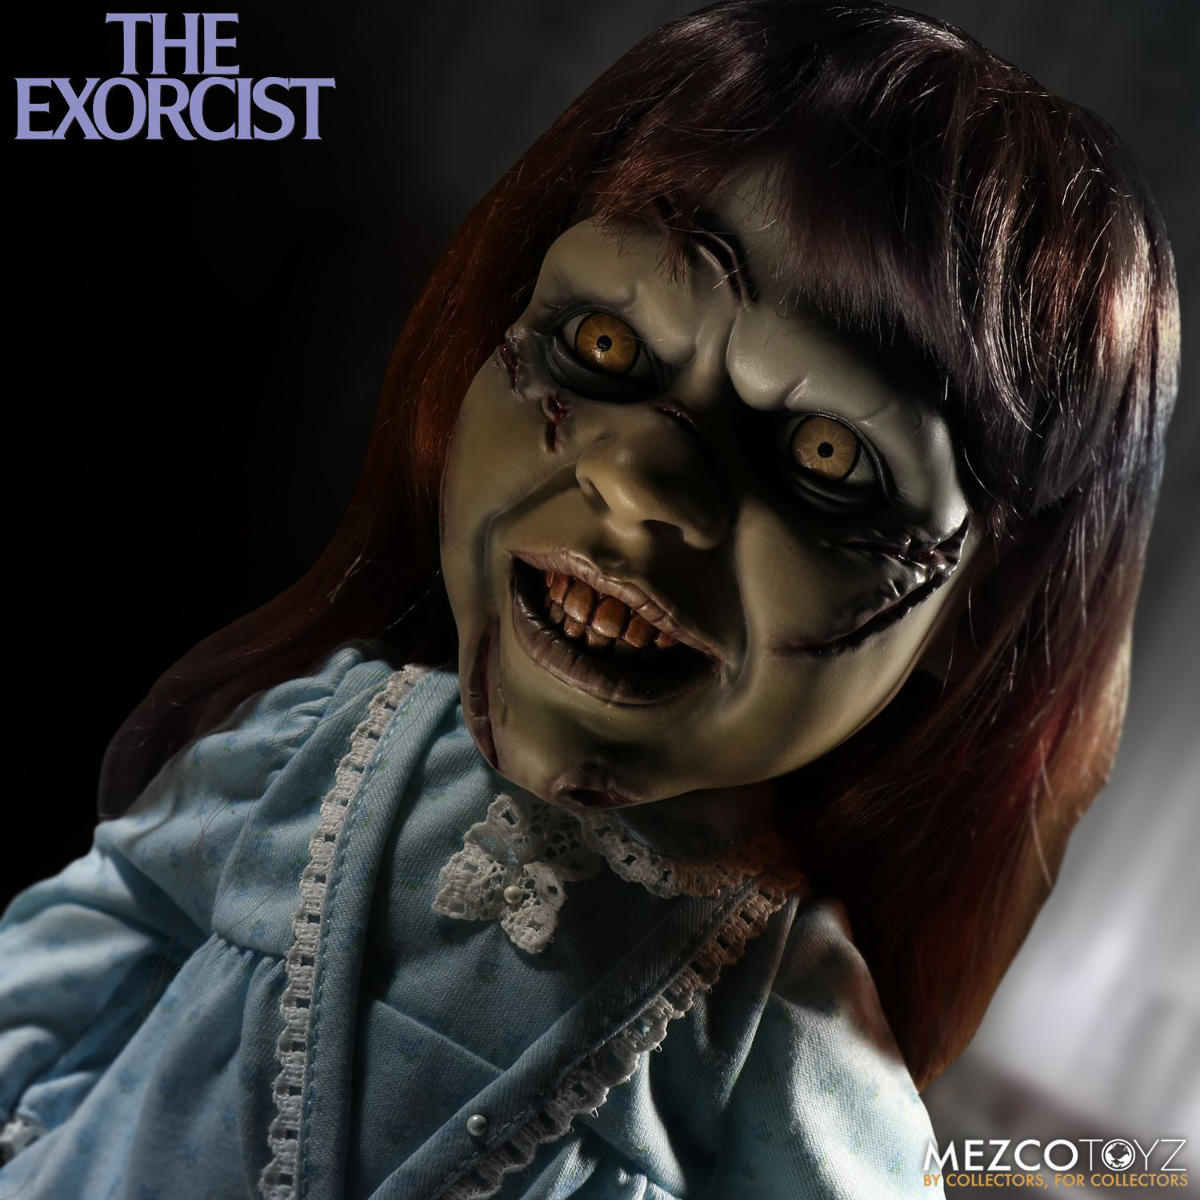 Mezco Toyz The Exorcist 5